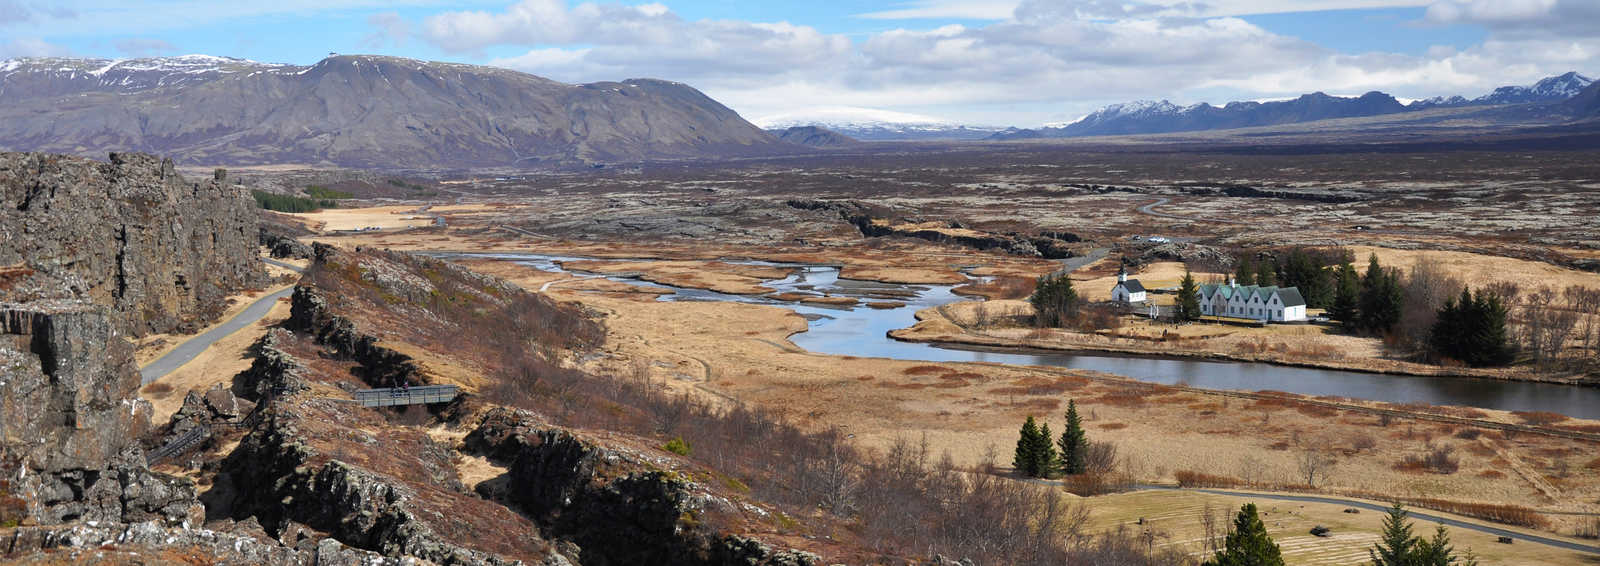 The rift valley at Thingvellir N.P, Rift Vally